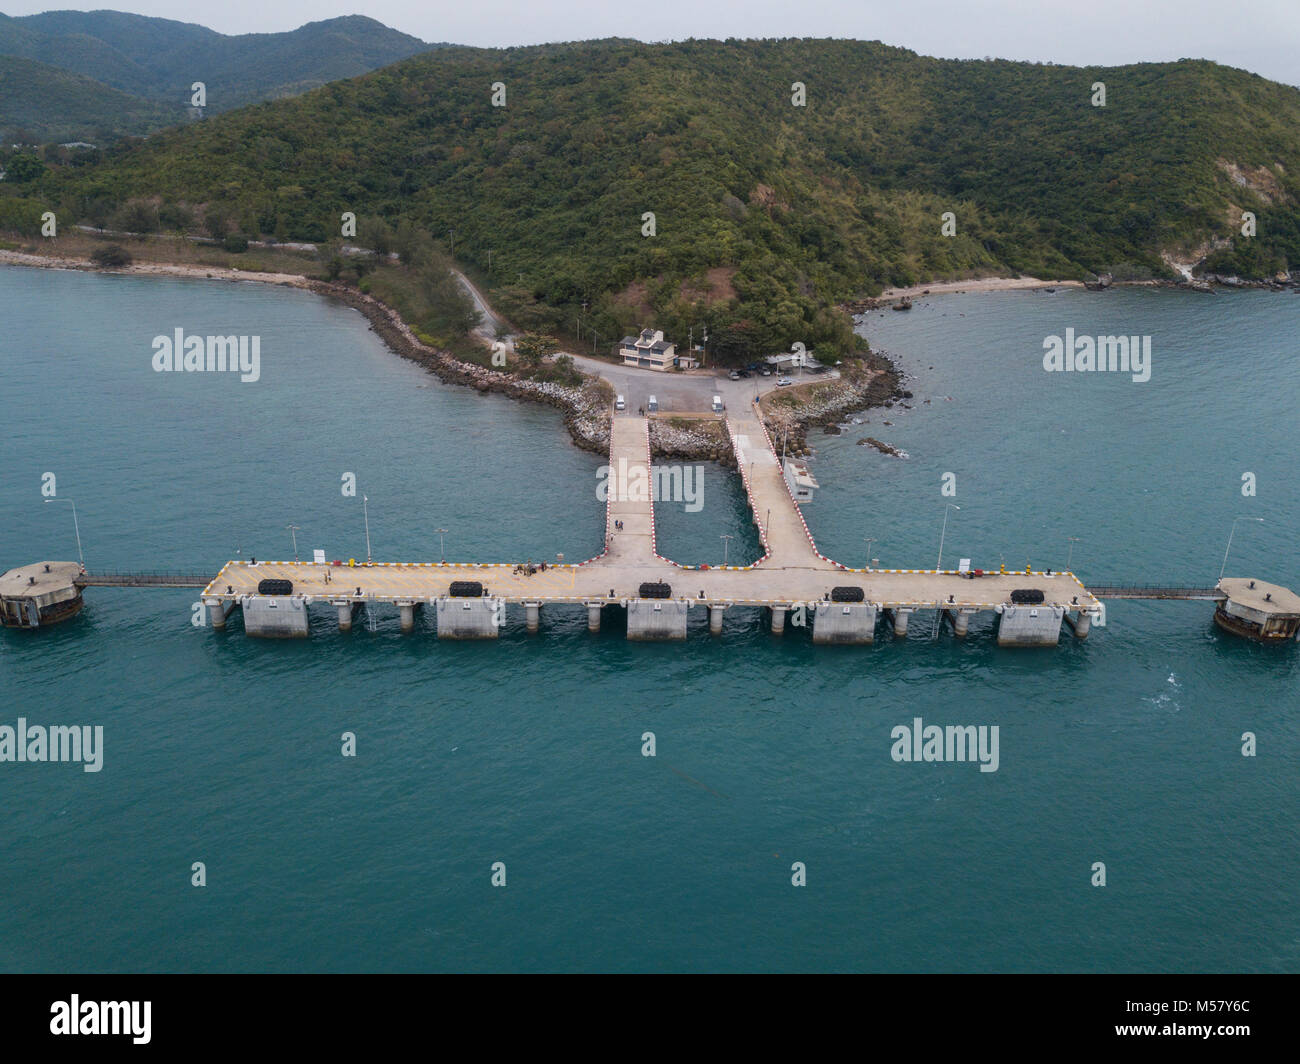 U.S. Navy Sailors assigned to Underwater Construction Team 2, stand on the Thung Prong Pier in Sattahip, Thailand Stock Photo